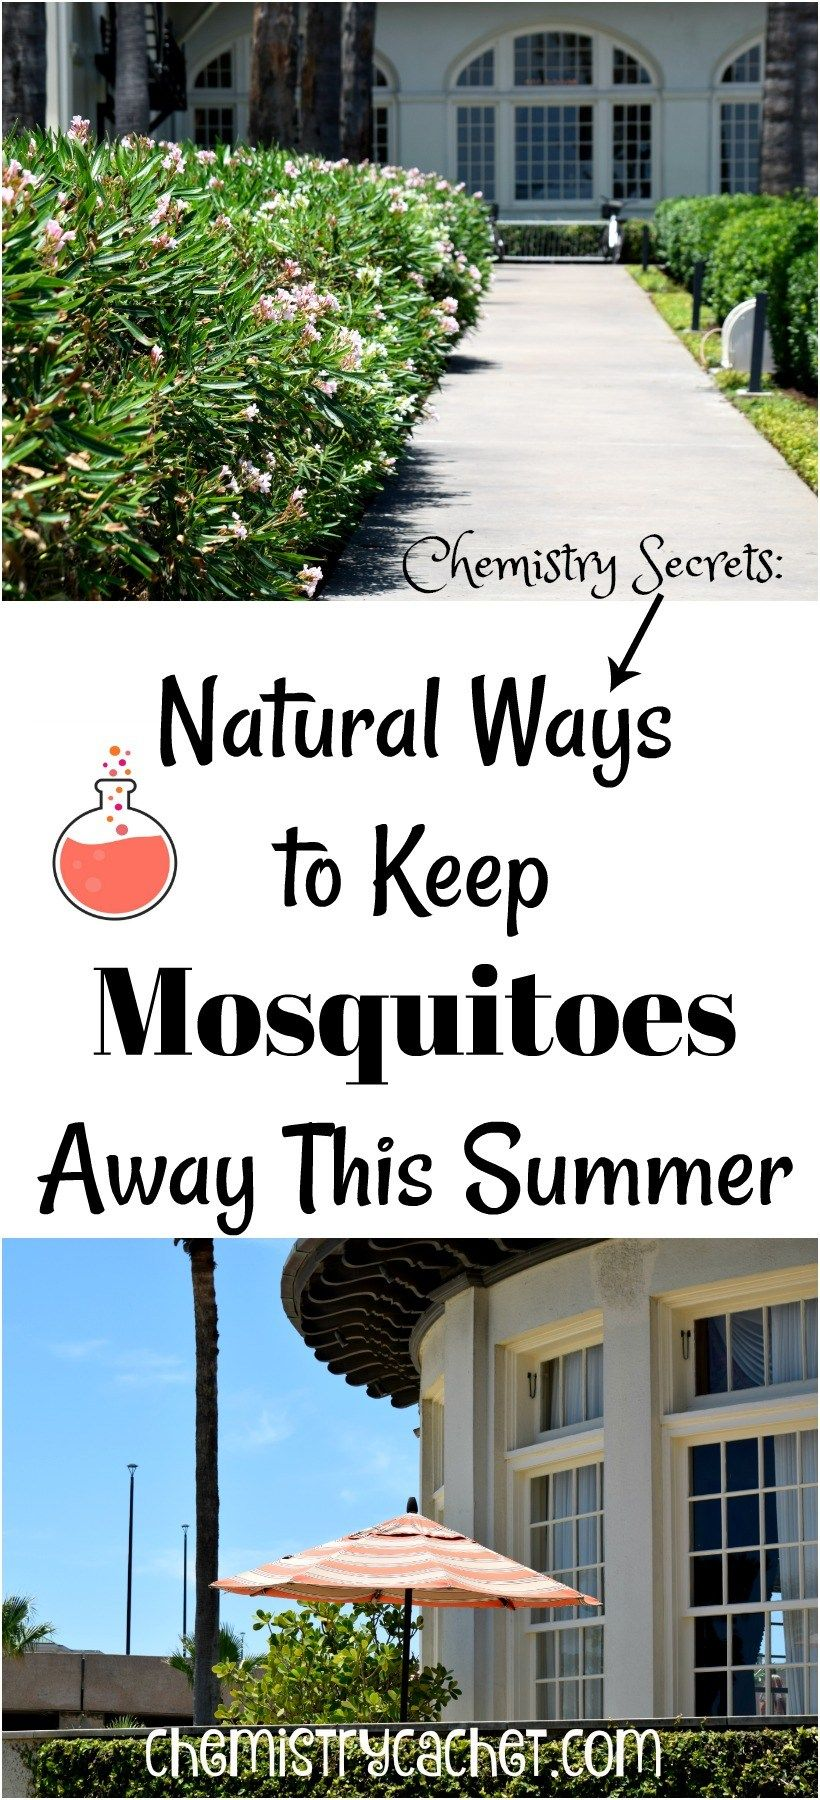 Chemistry Secrets: Natural Ways to Keep Mosquitoes Away ...